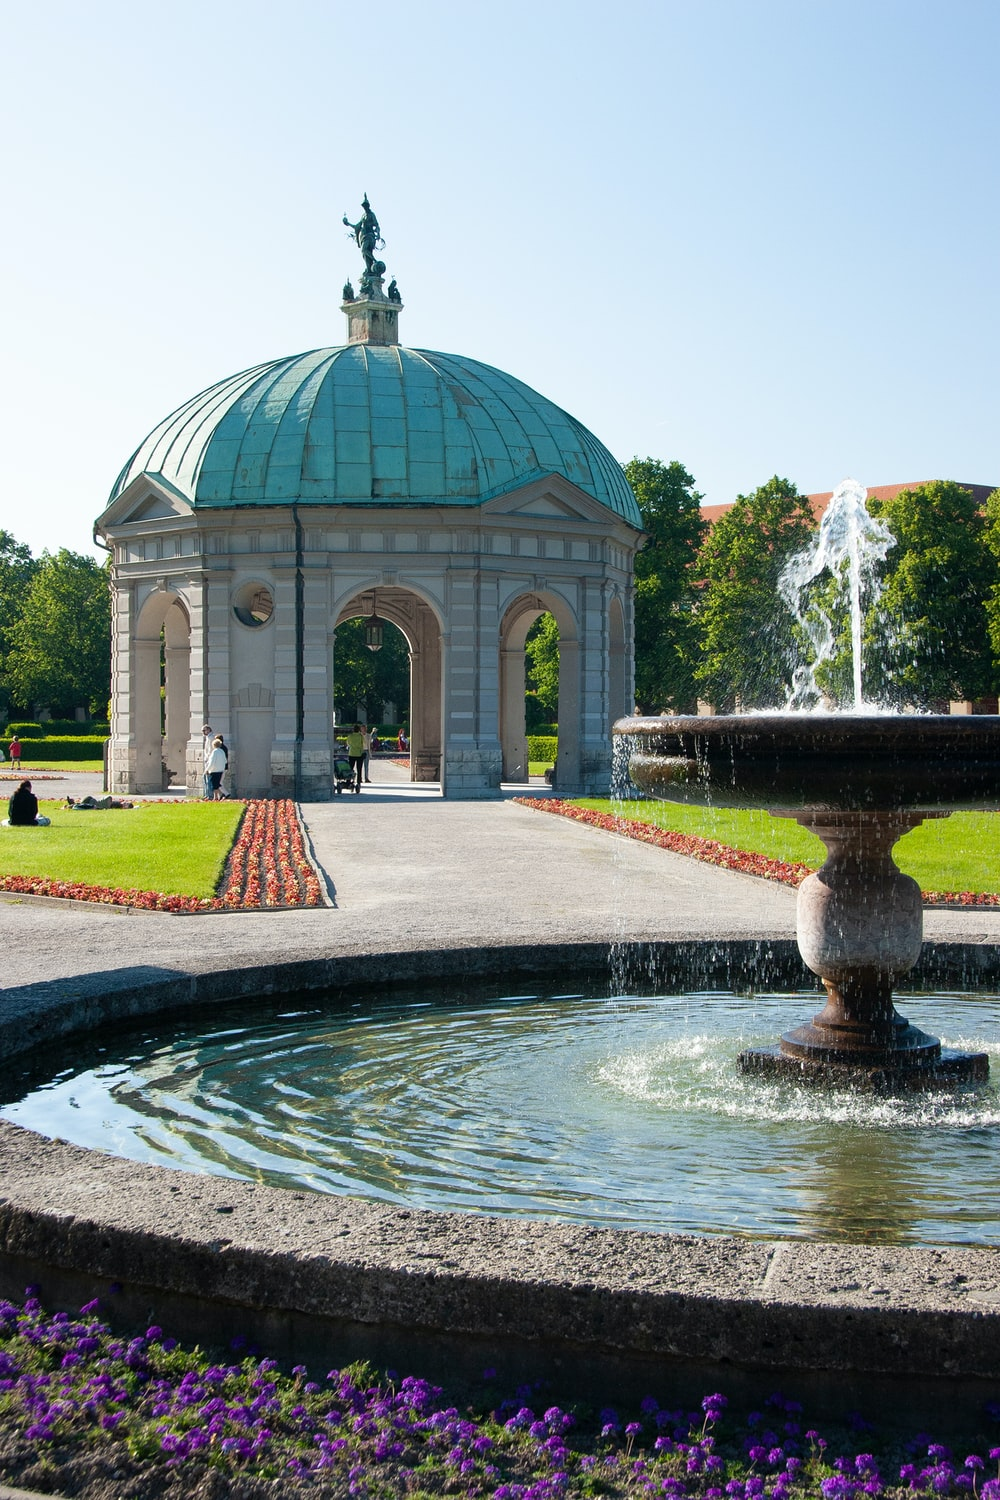 water fountain in front of white and green dome building